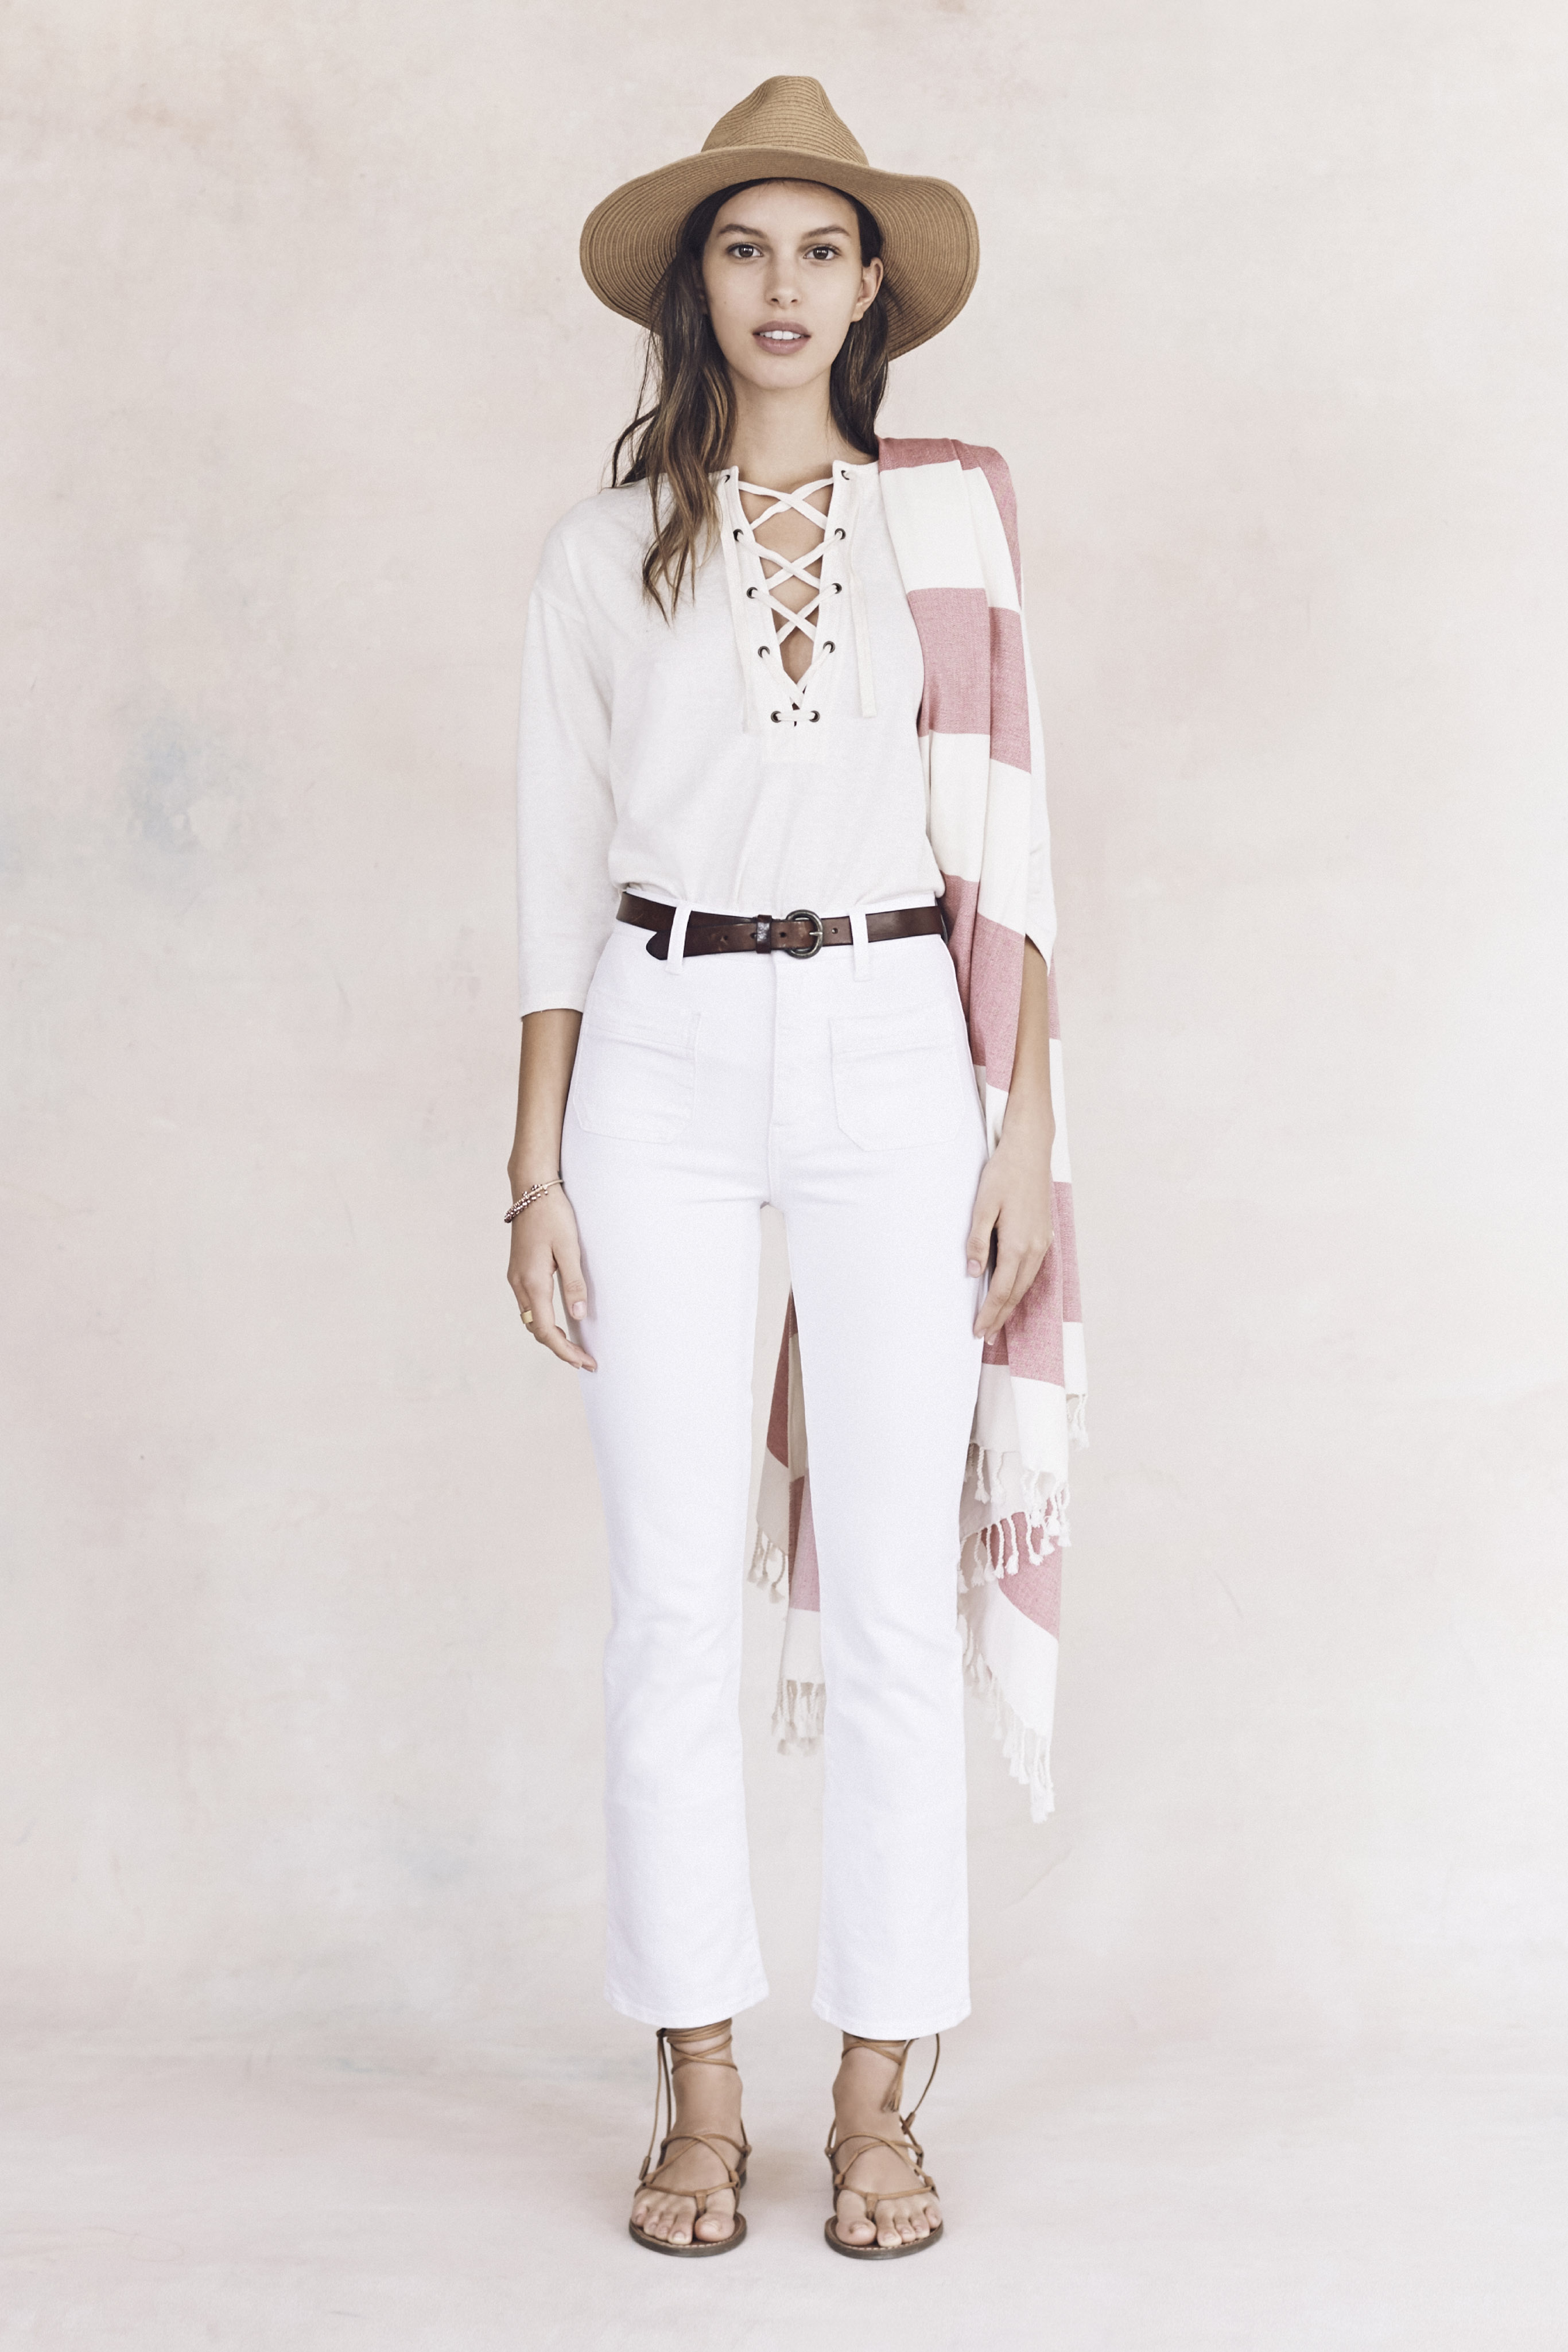 a3f01bdbd1 See Madewell s First Collection Under Its New Head of Design - Racked